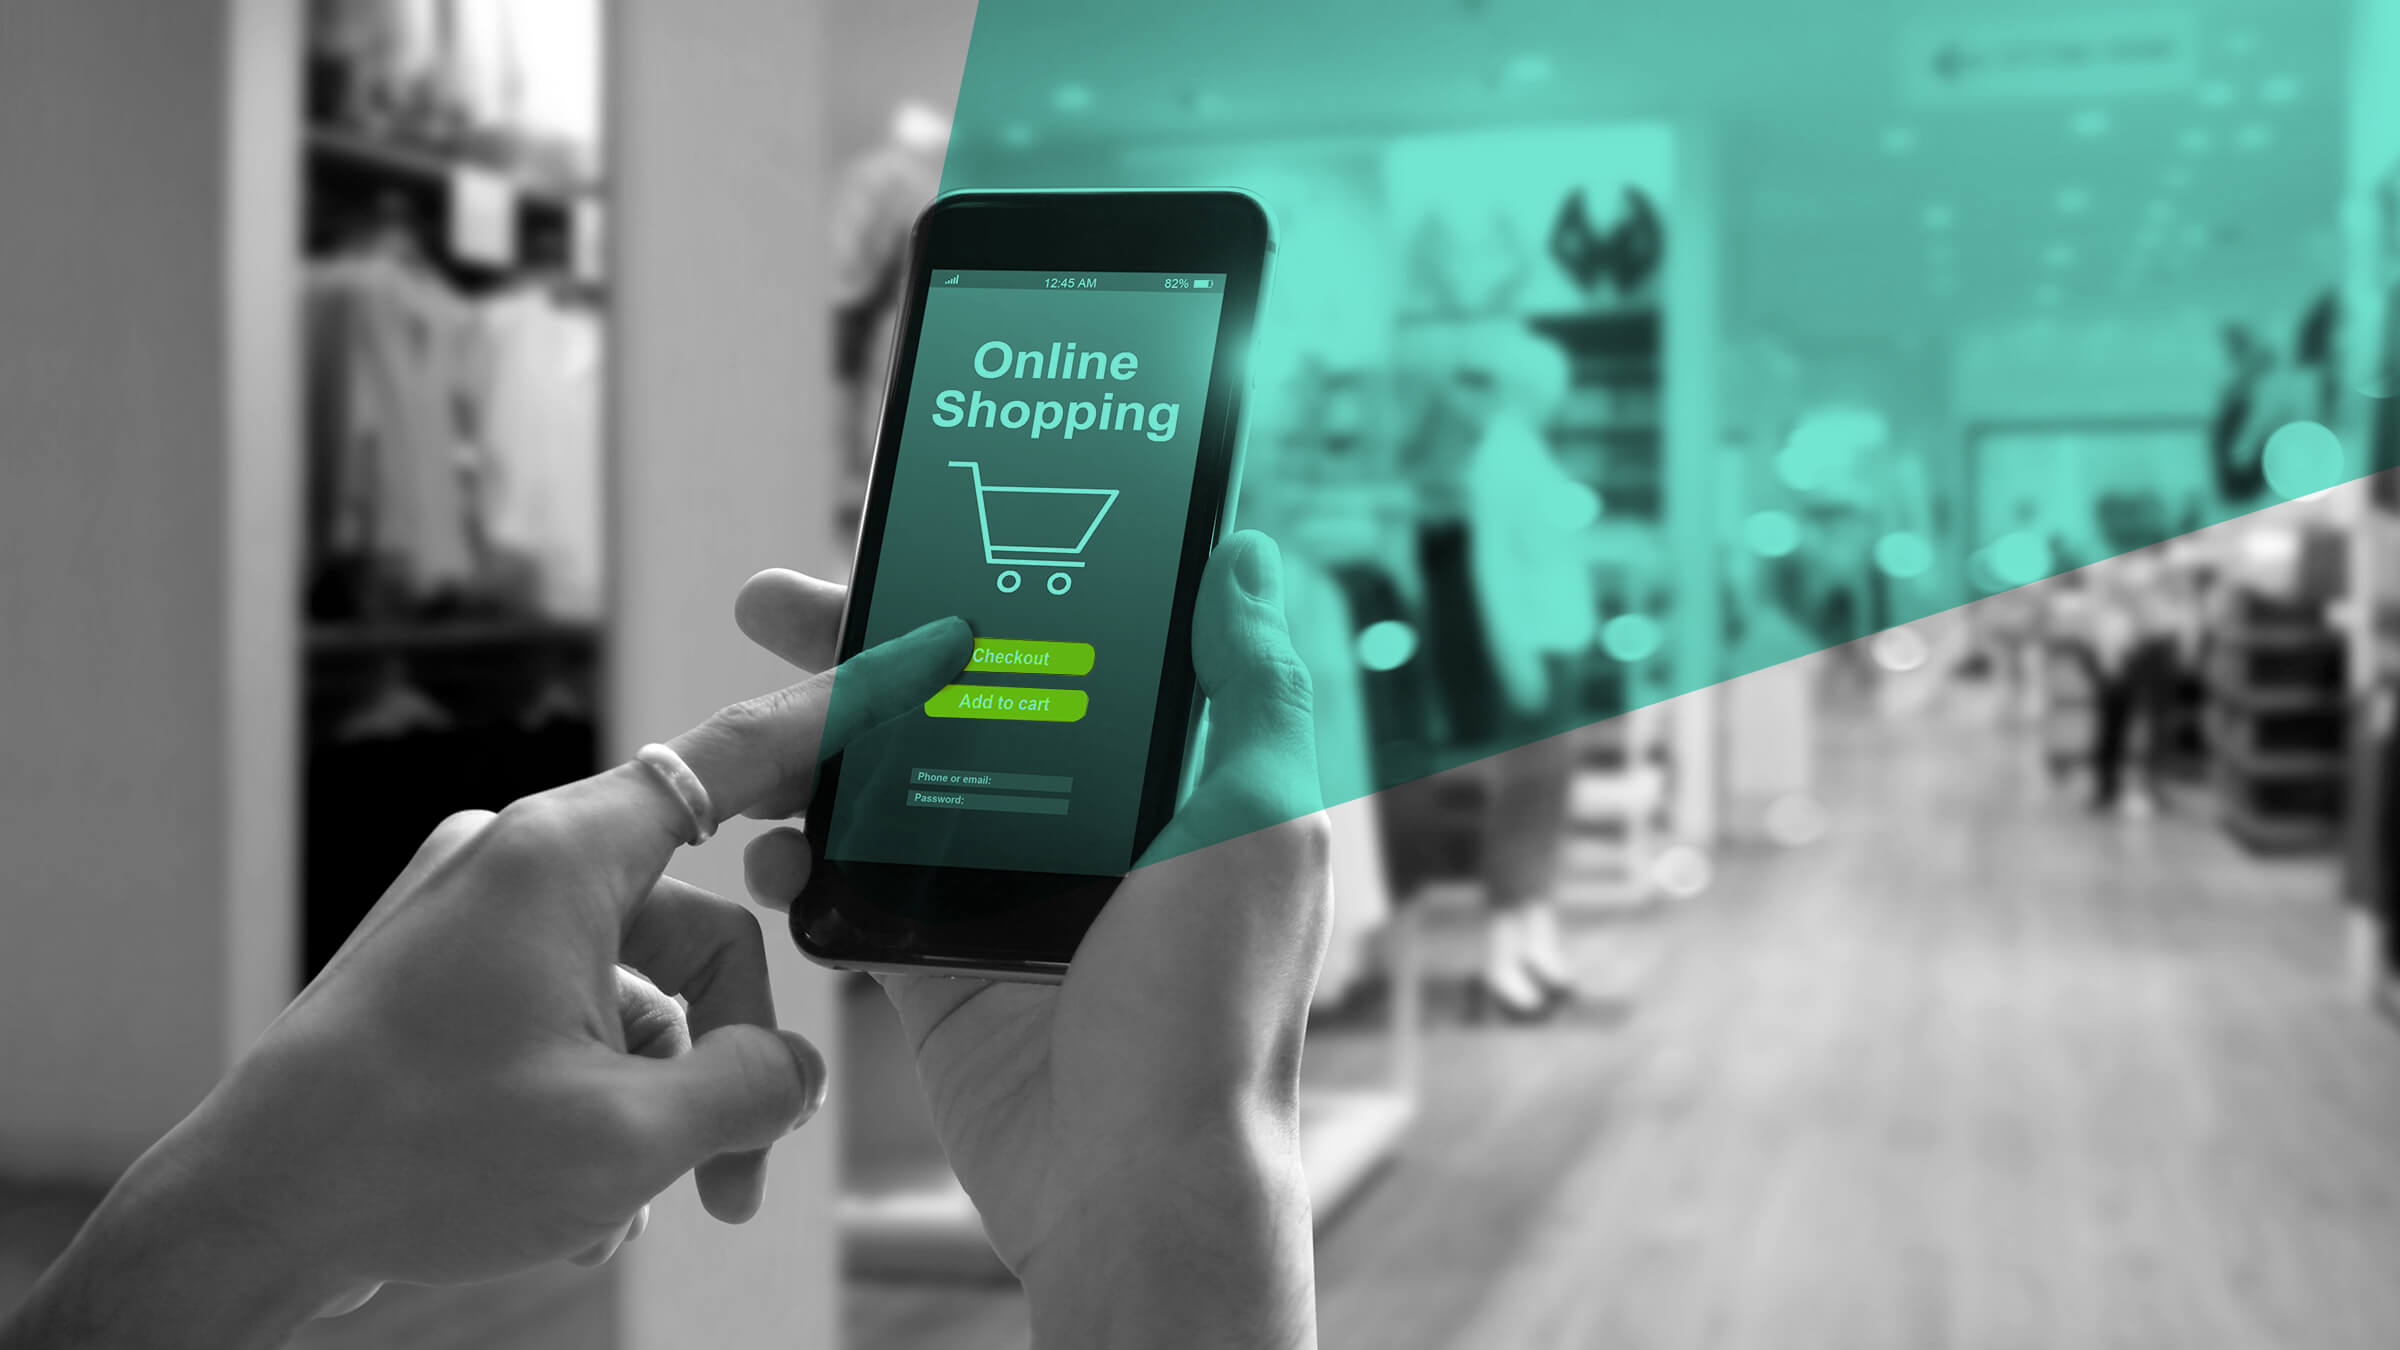 Insurance at the point of sale can boost consumer retail spend